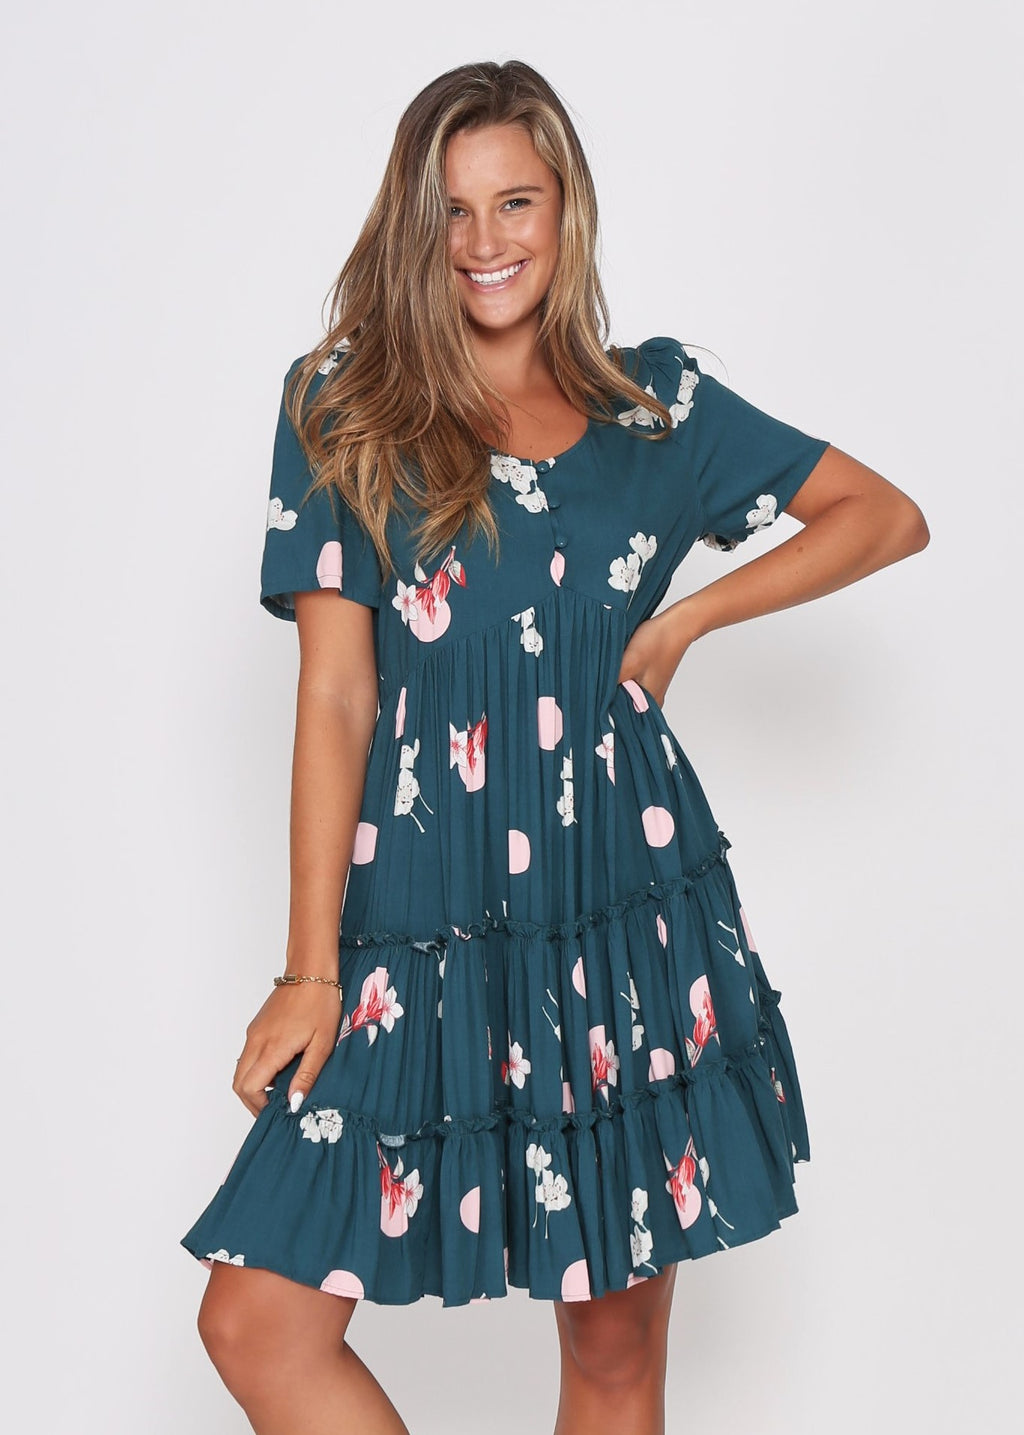 NEW - SAMMI DRESS - TEAL ROSE